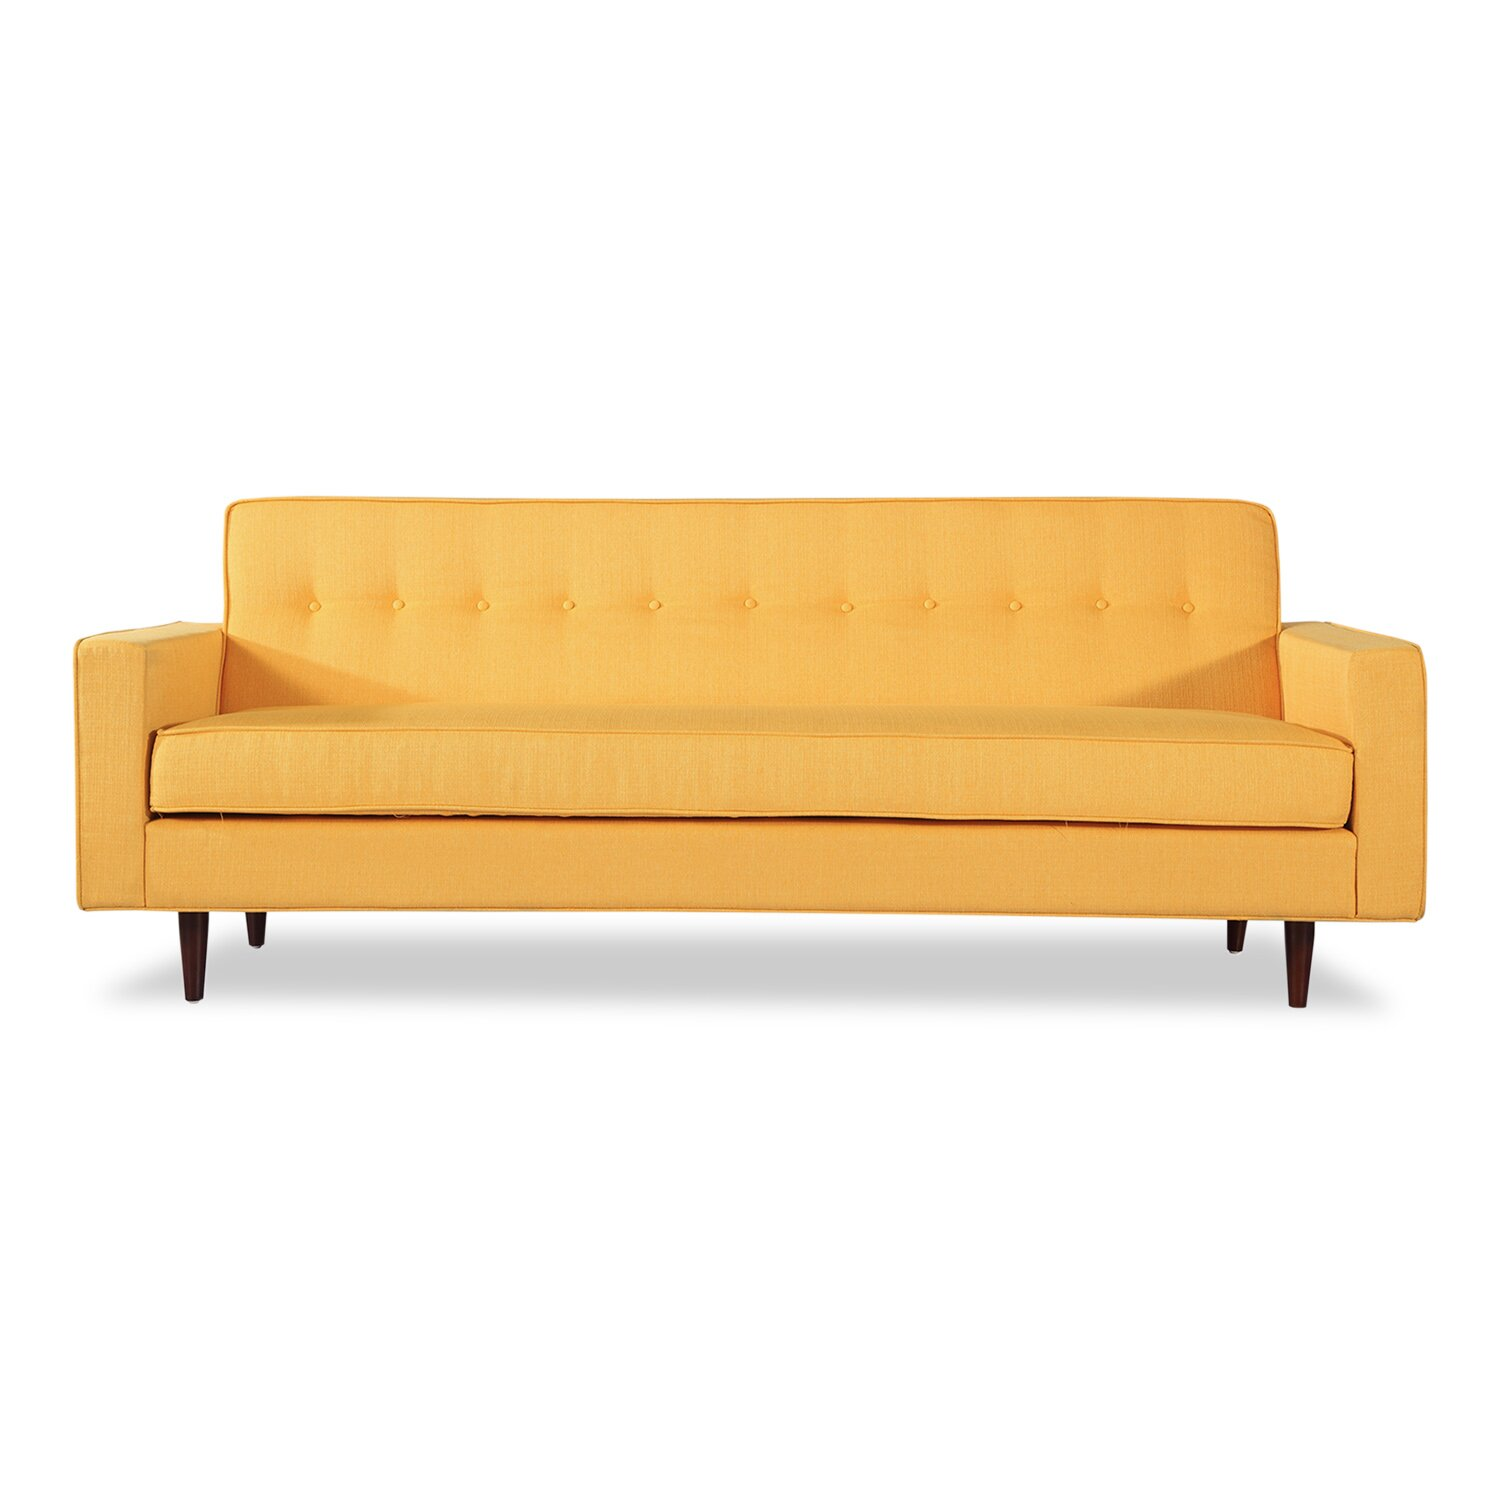 Kardiel eleanor mid century modern sofa reviews wayfair for Mid century modern sofas